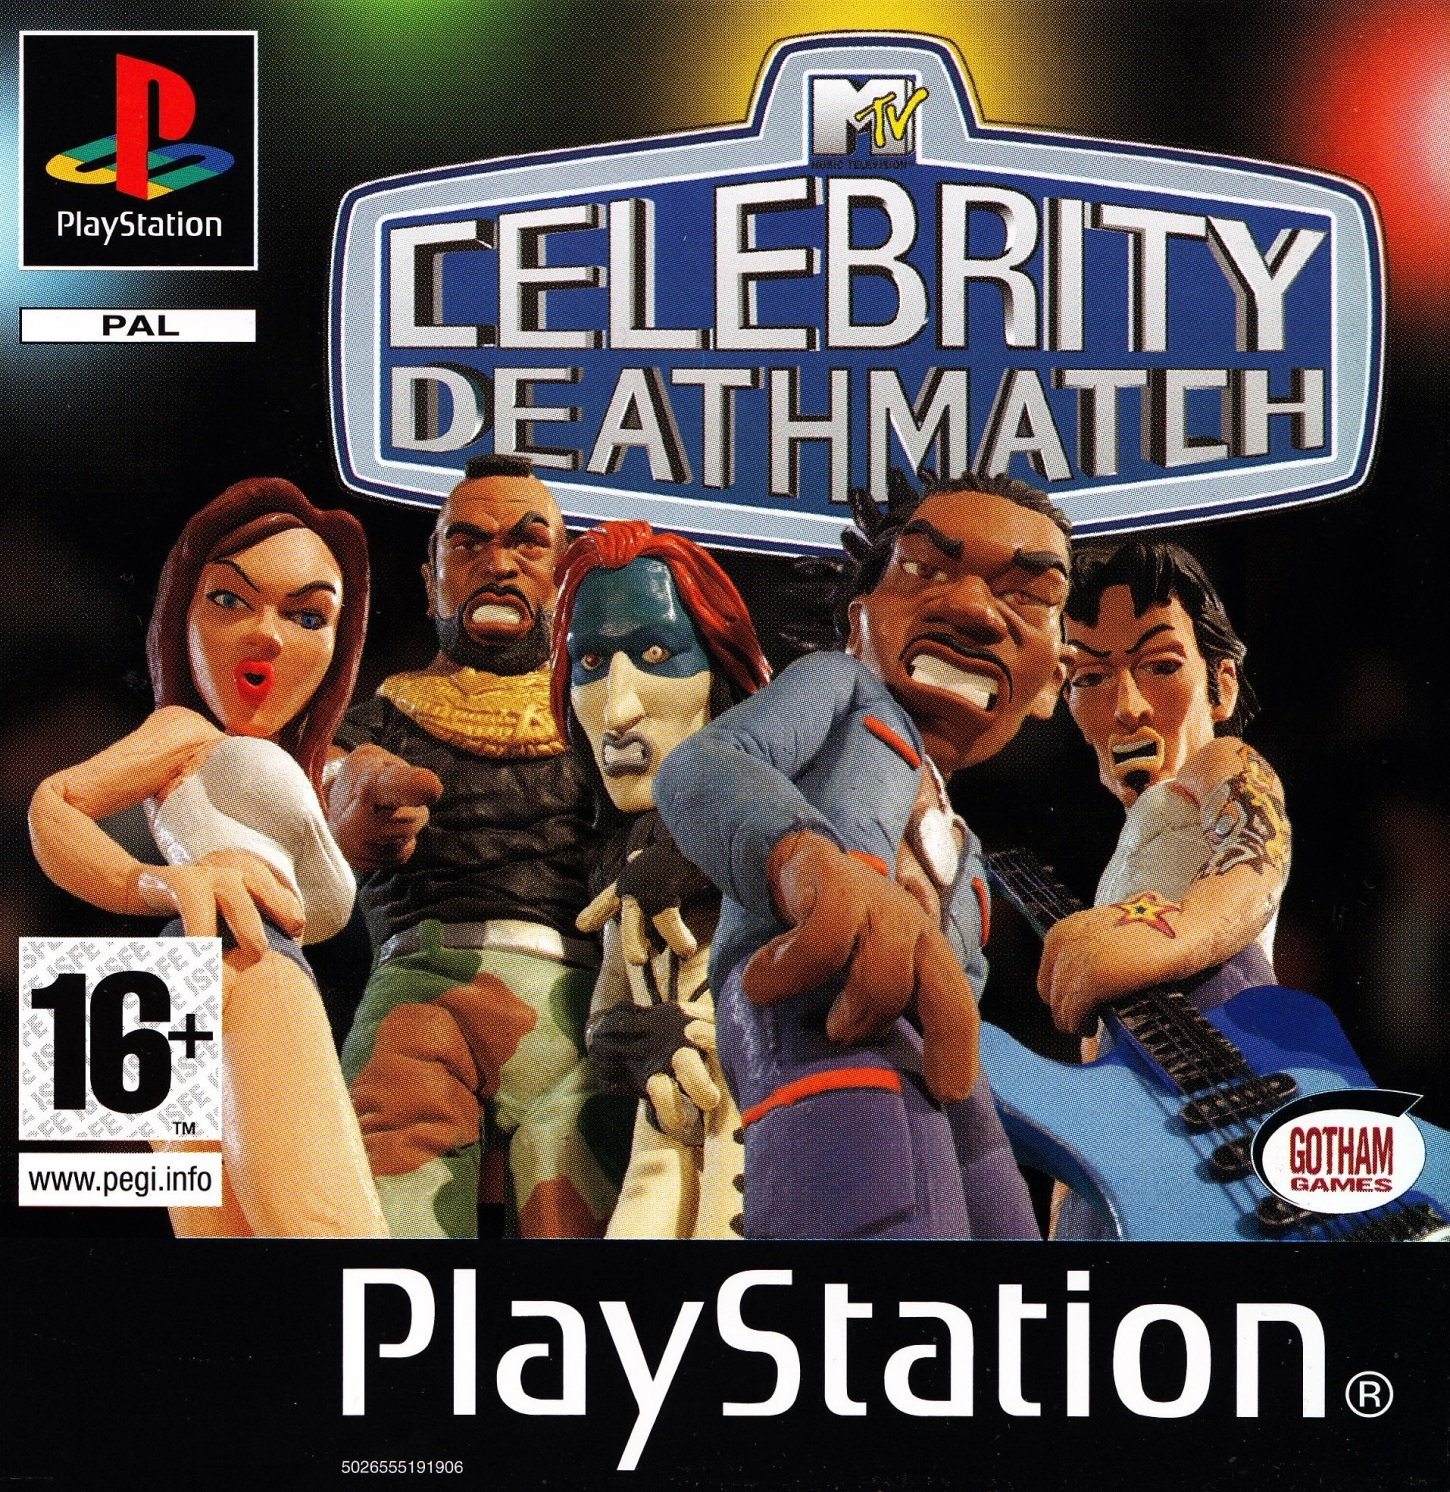 Psx mtv celebrity deathmatch coolrom